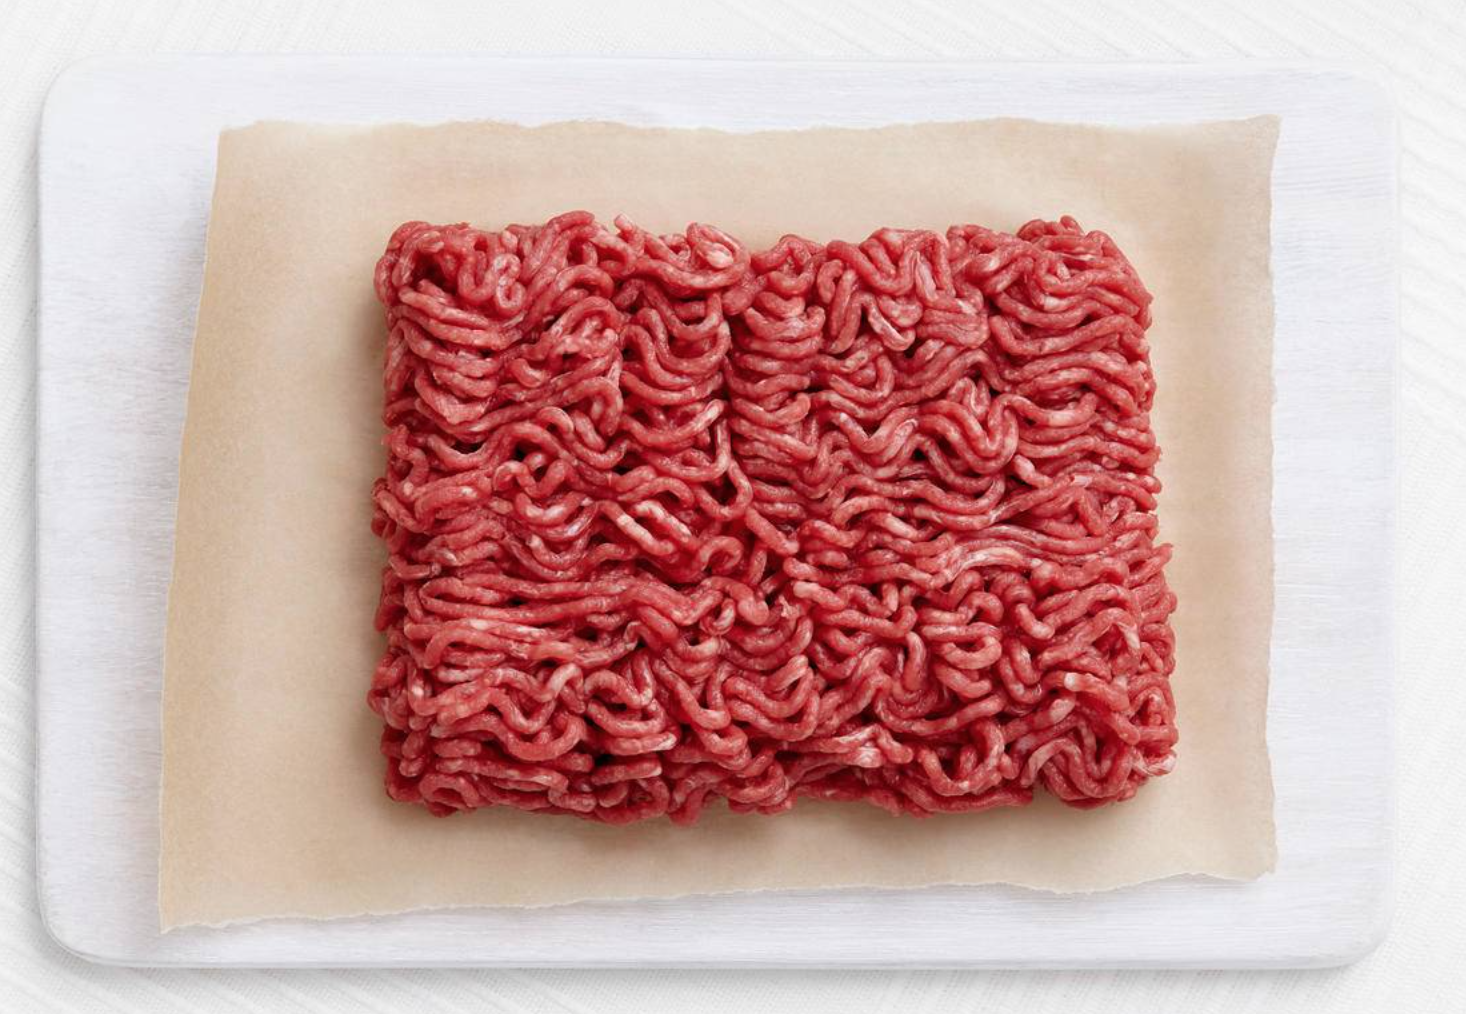 How Long Can You Safely Store Ground Beef in the Freezer?